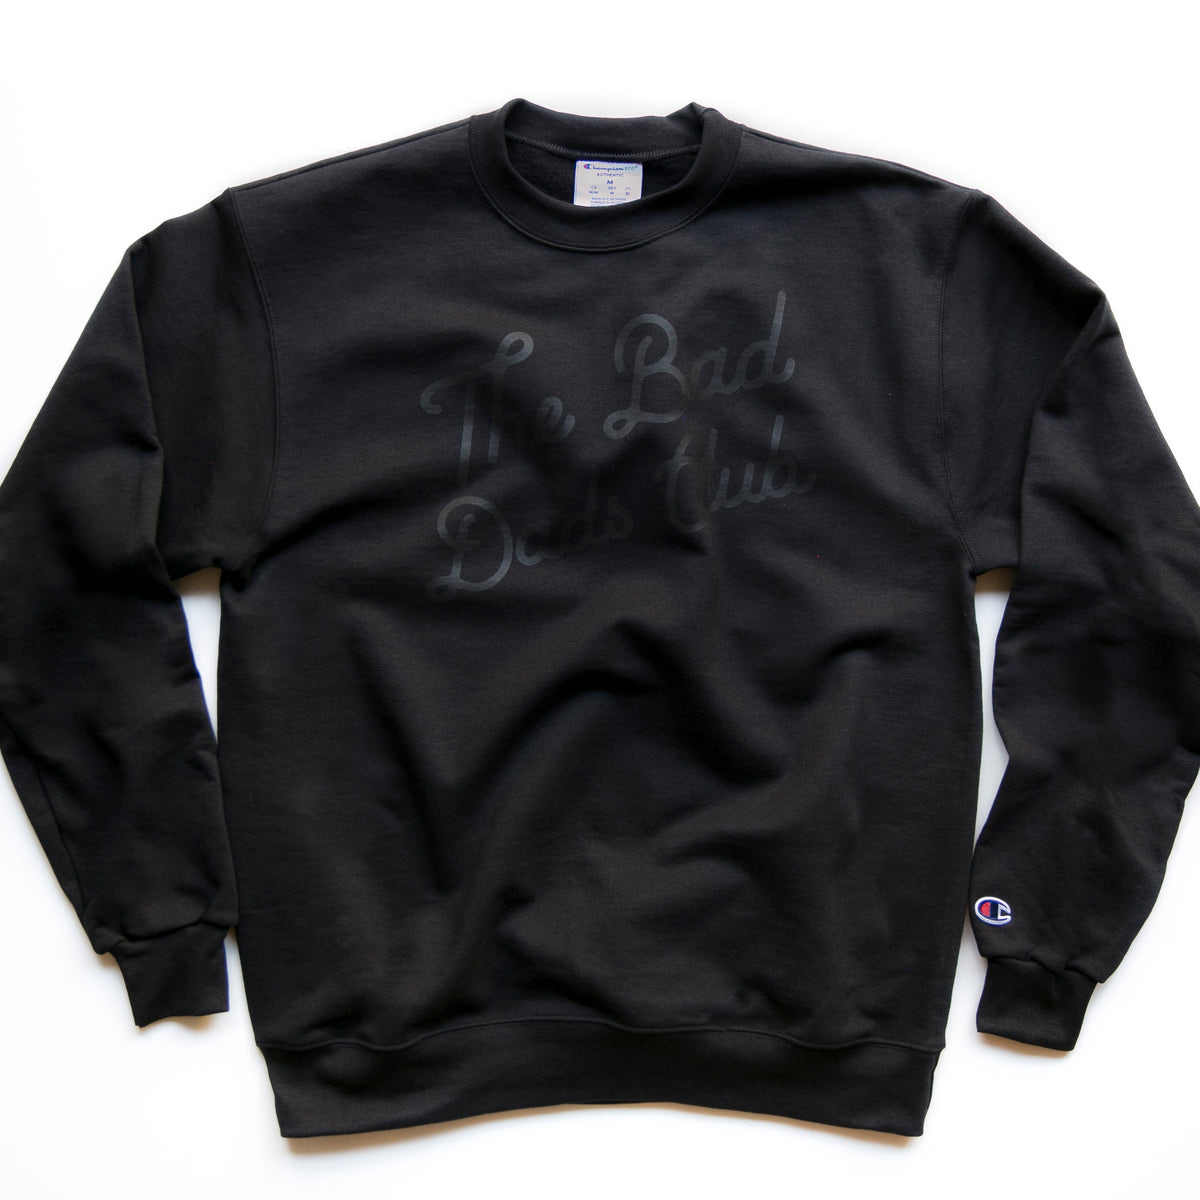 """The Bad Dads Club"" X CHAMPION Blackout Sweatshirt"